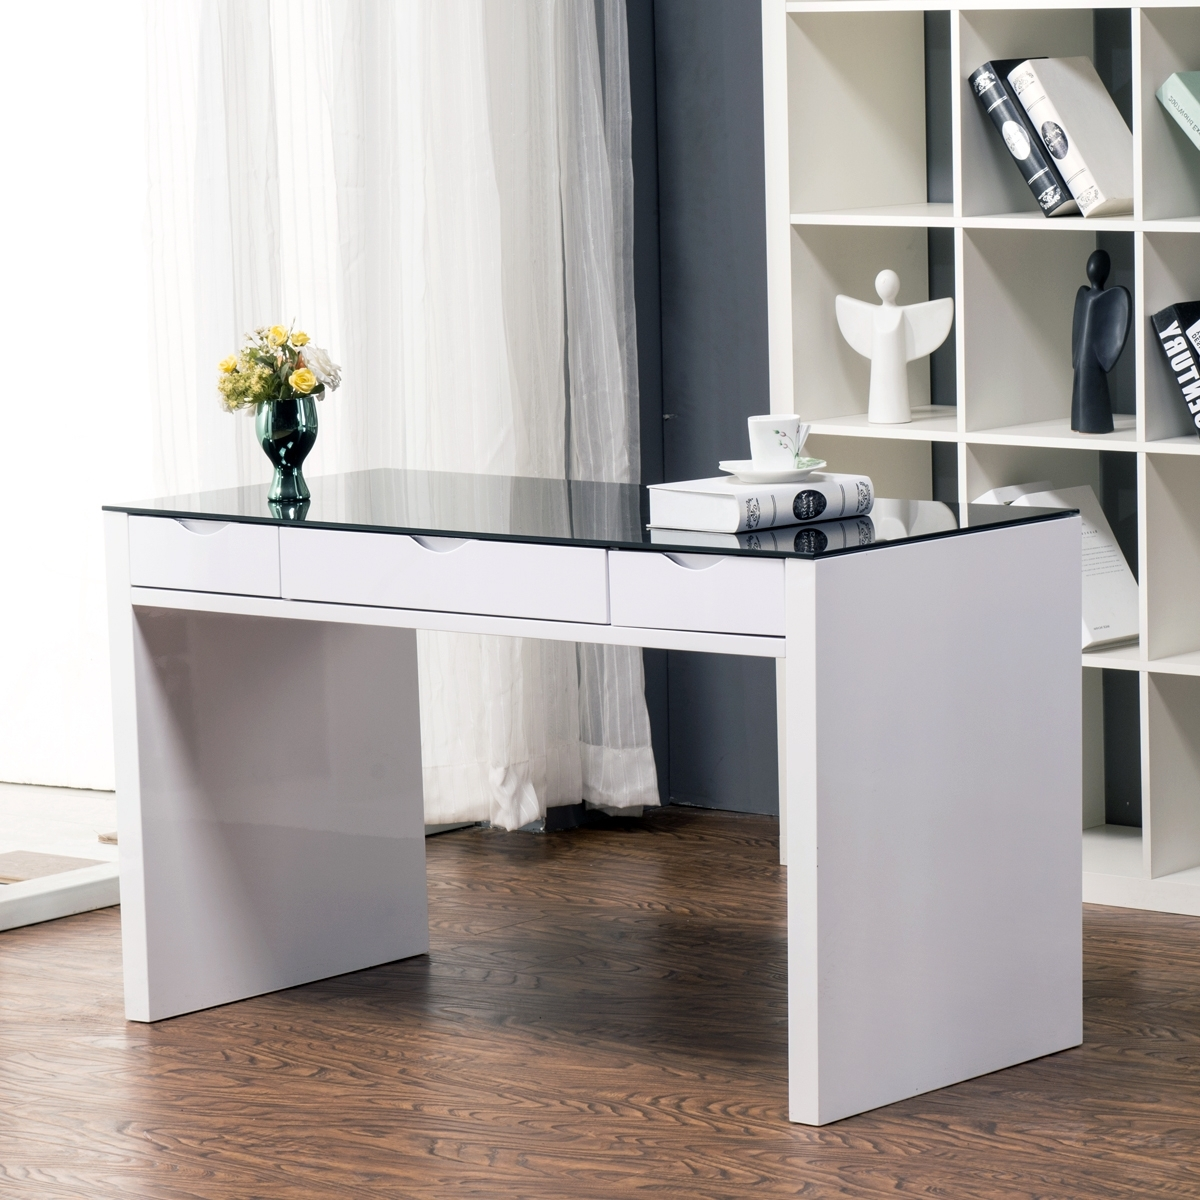 2019 Computer Desks In White Inside Furniture : Cheap White Desk Small Computer Desks Get Quotations A (View 2 of 20)